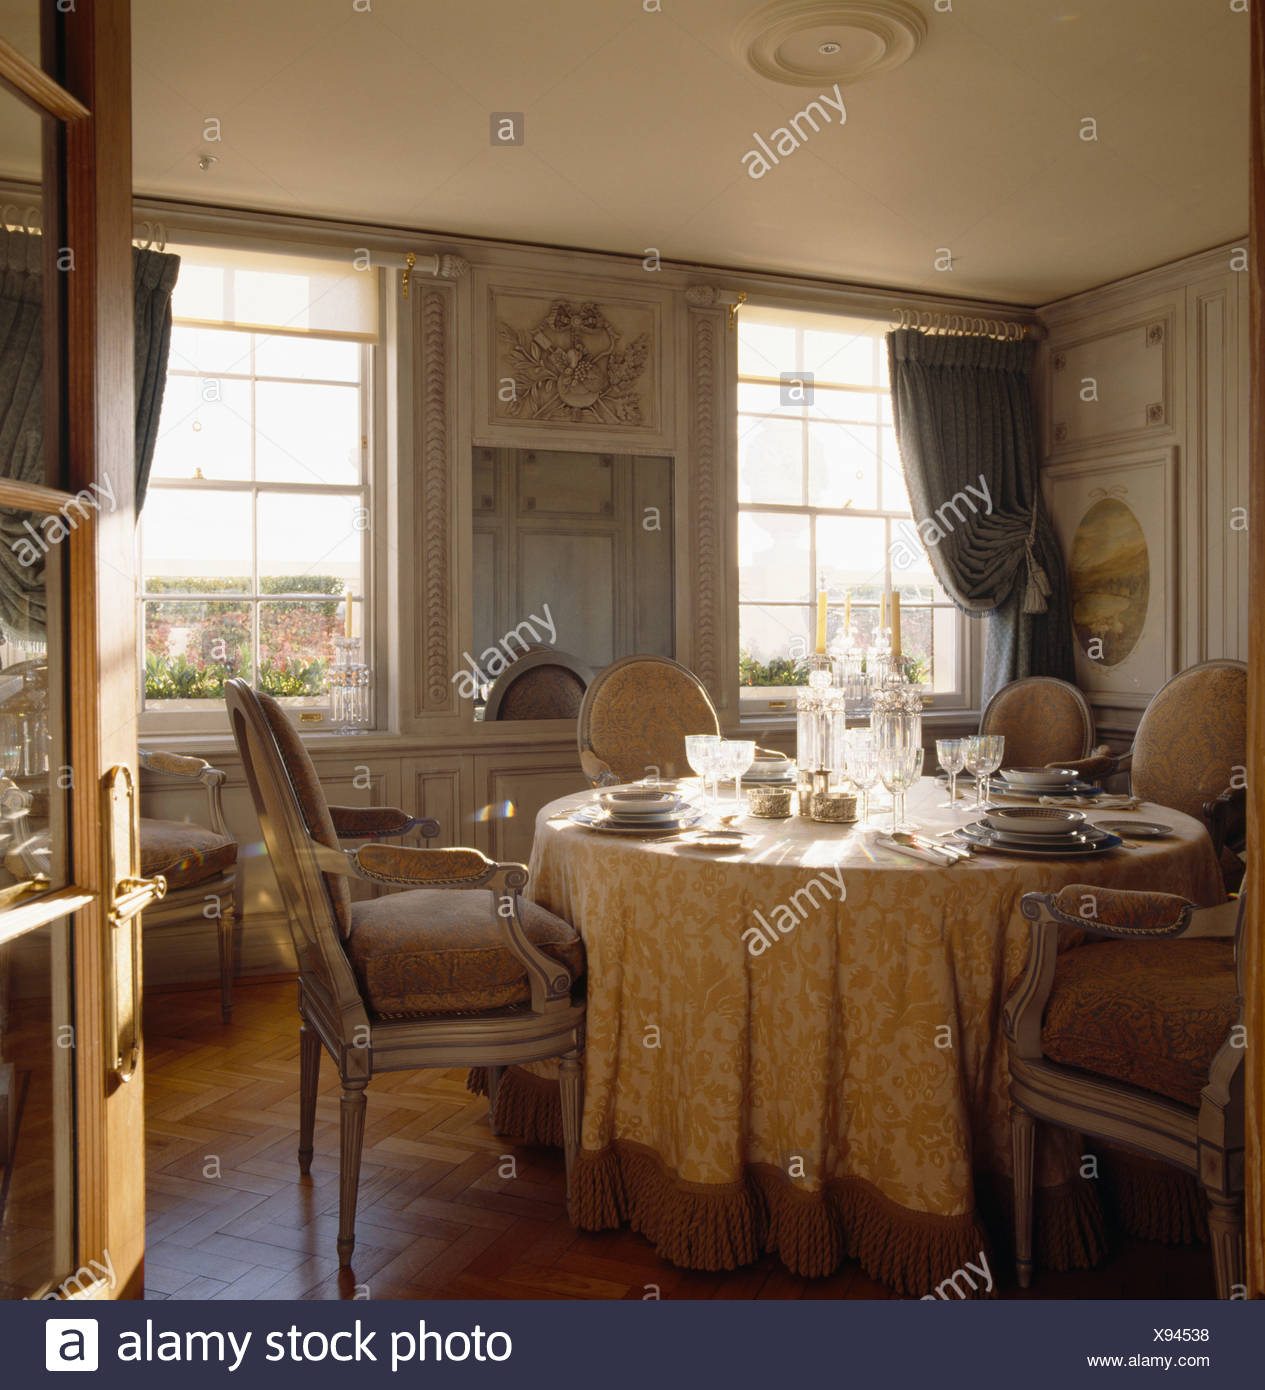 Louis IV style upholstered chairs and table with cream silk cloth in pale grey panelled country dining room - Stock Image